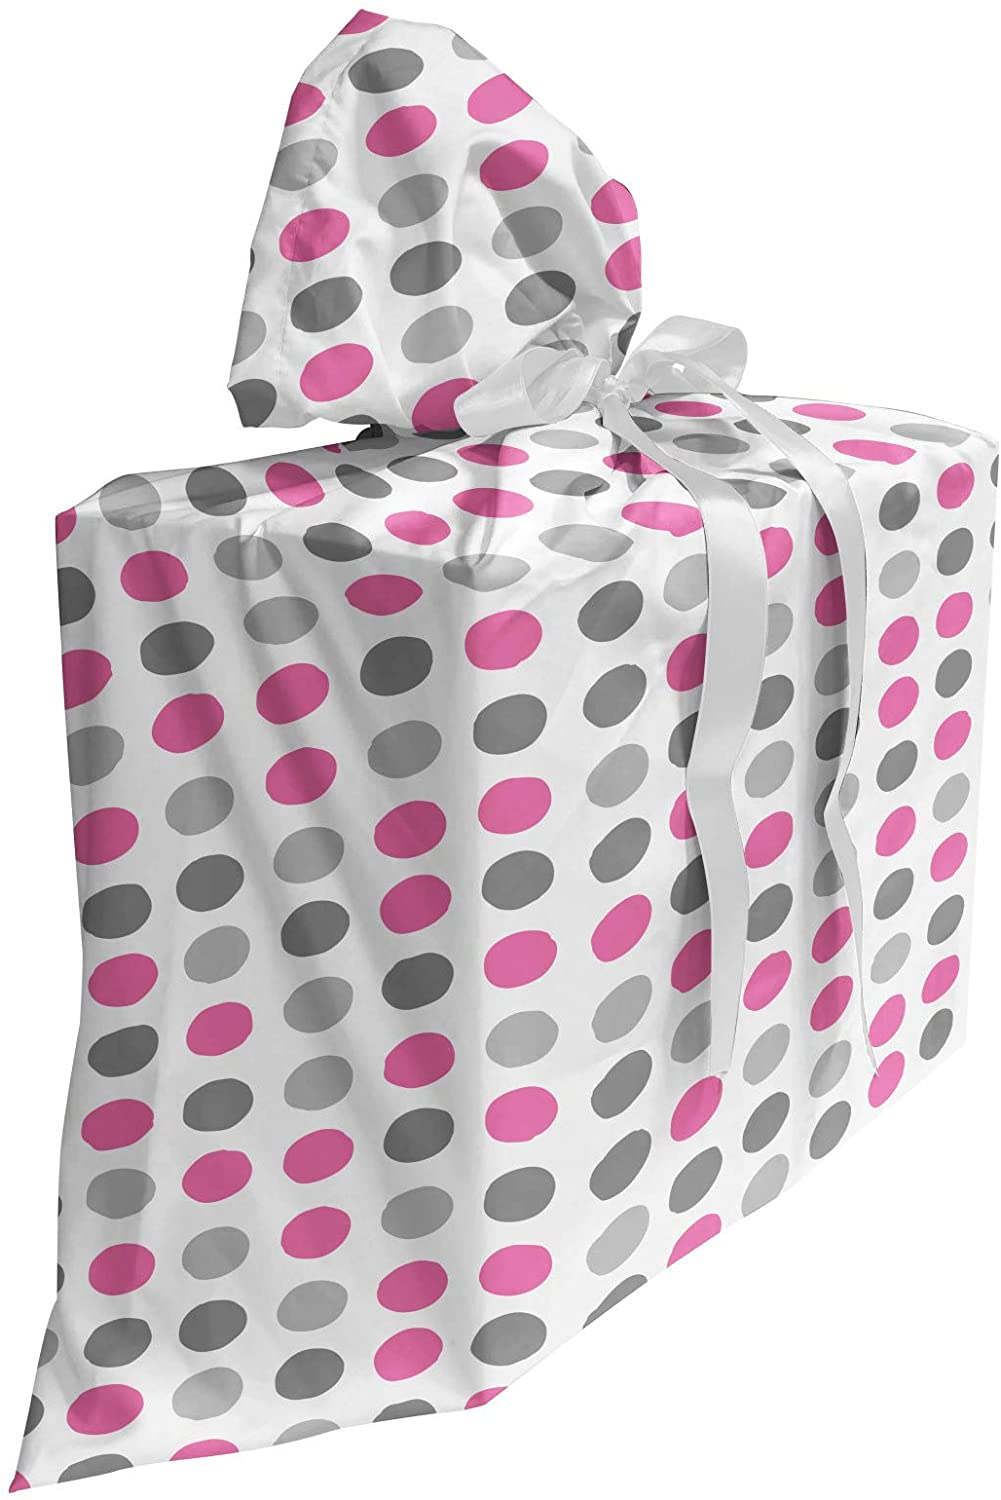 Ambesonne Geometric Fabric Gift Bag, Traditional Retro Polka Dots Design European Ancestral Motif Pastel Colors, Present Sack for Baby Showers Birthdays with 3 Ribbons, 27 X 32, White Grey